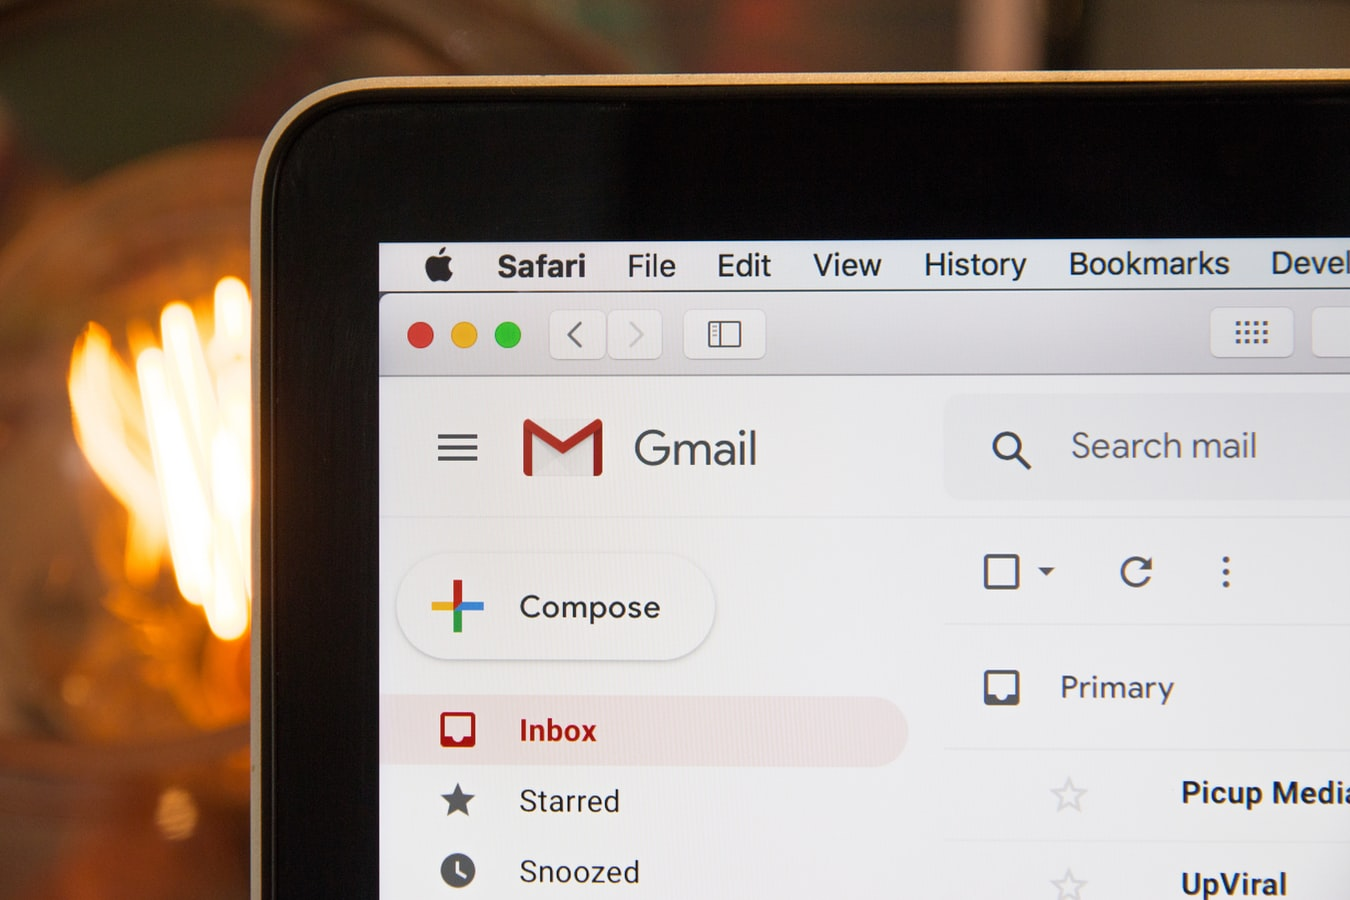 Enhance Emails with Images